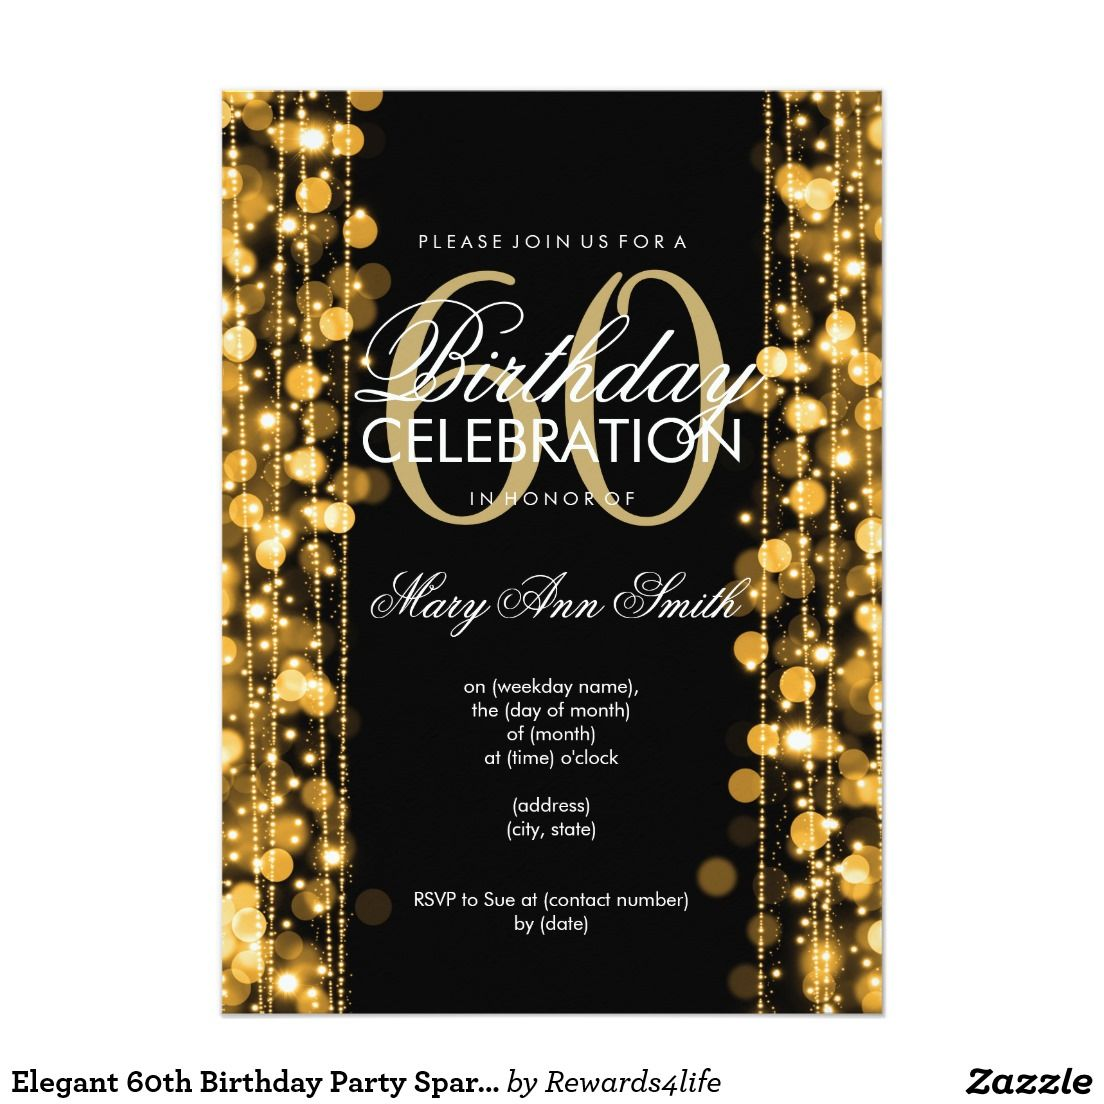 Elegant 60th birthday party sparkles gold card elegant artwork elegant 60th birthday party sparkles gold 5x7 paper invitations artwork designed by rewards4lifes gifts filmwisefo Choice Image